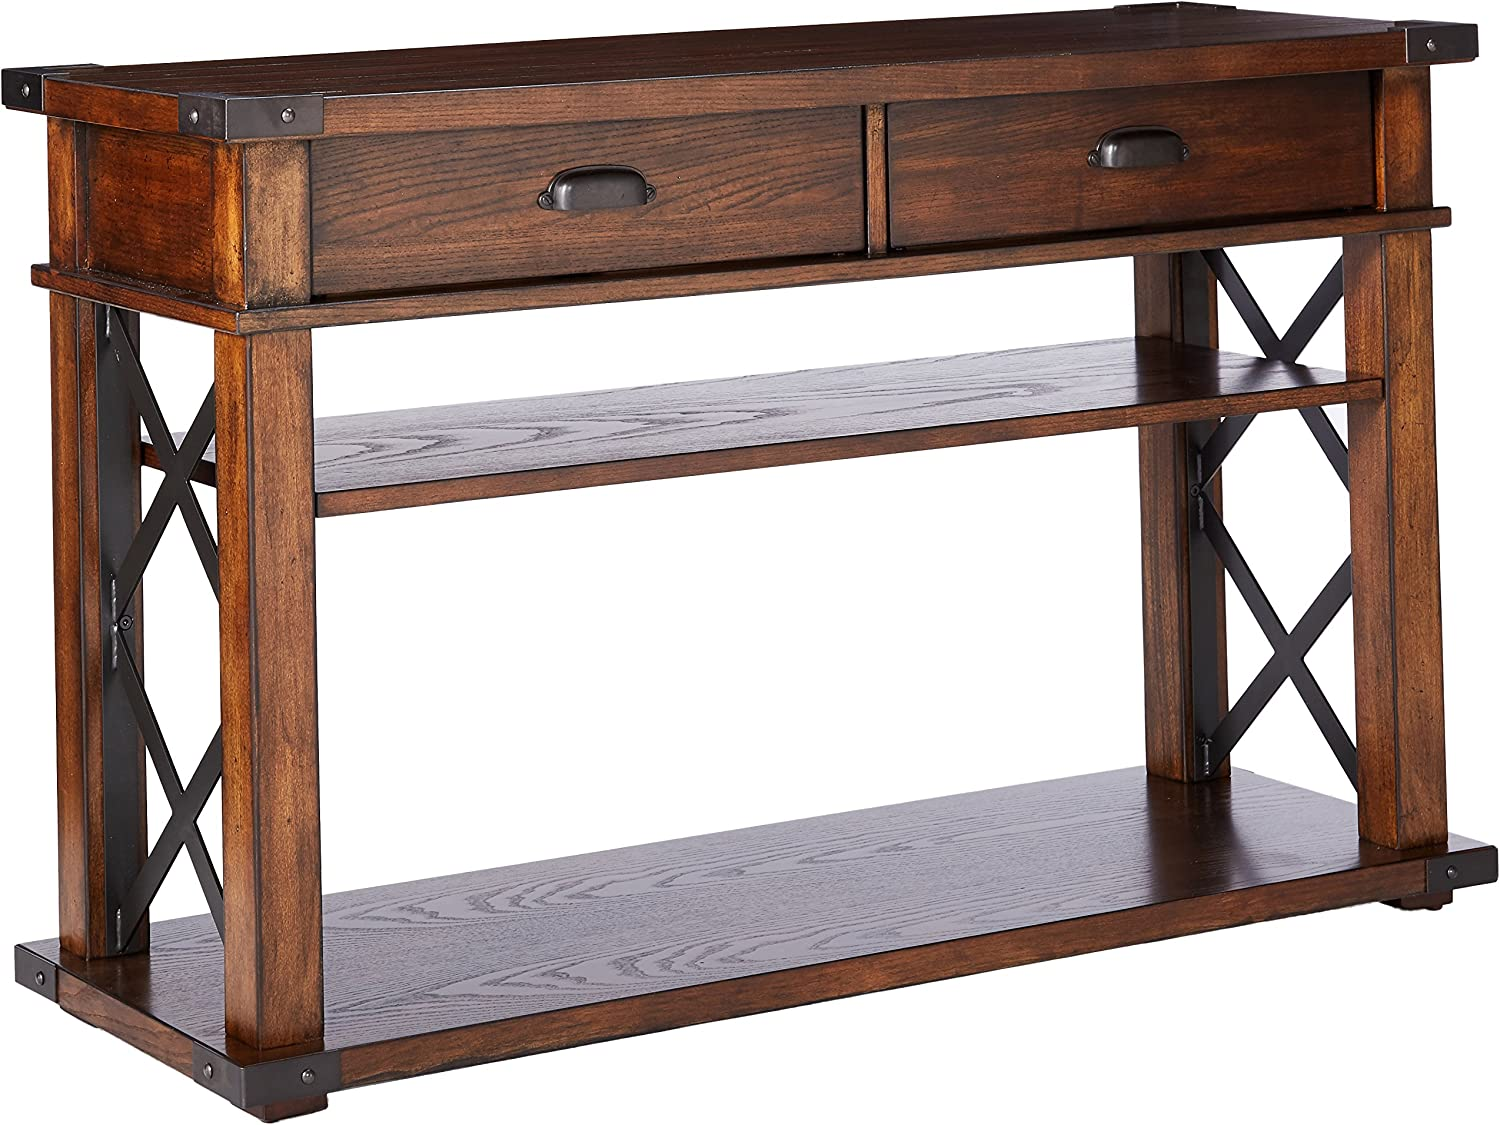 Progressive Furniture Landmark Sofa Console Table, 48 x 16 x 30 , Vintage Ash